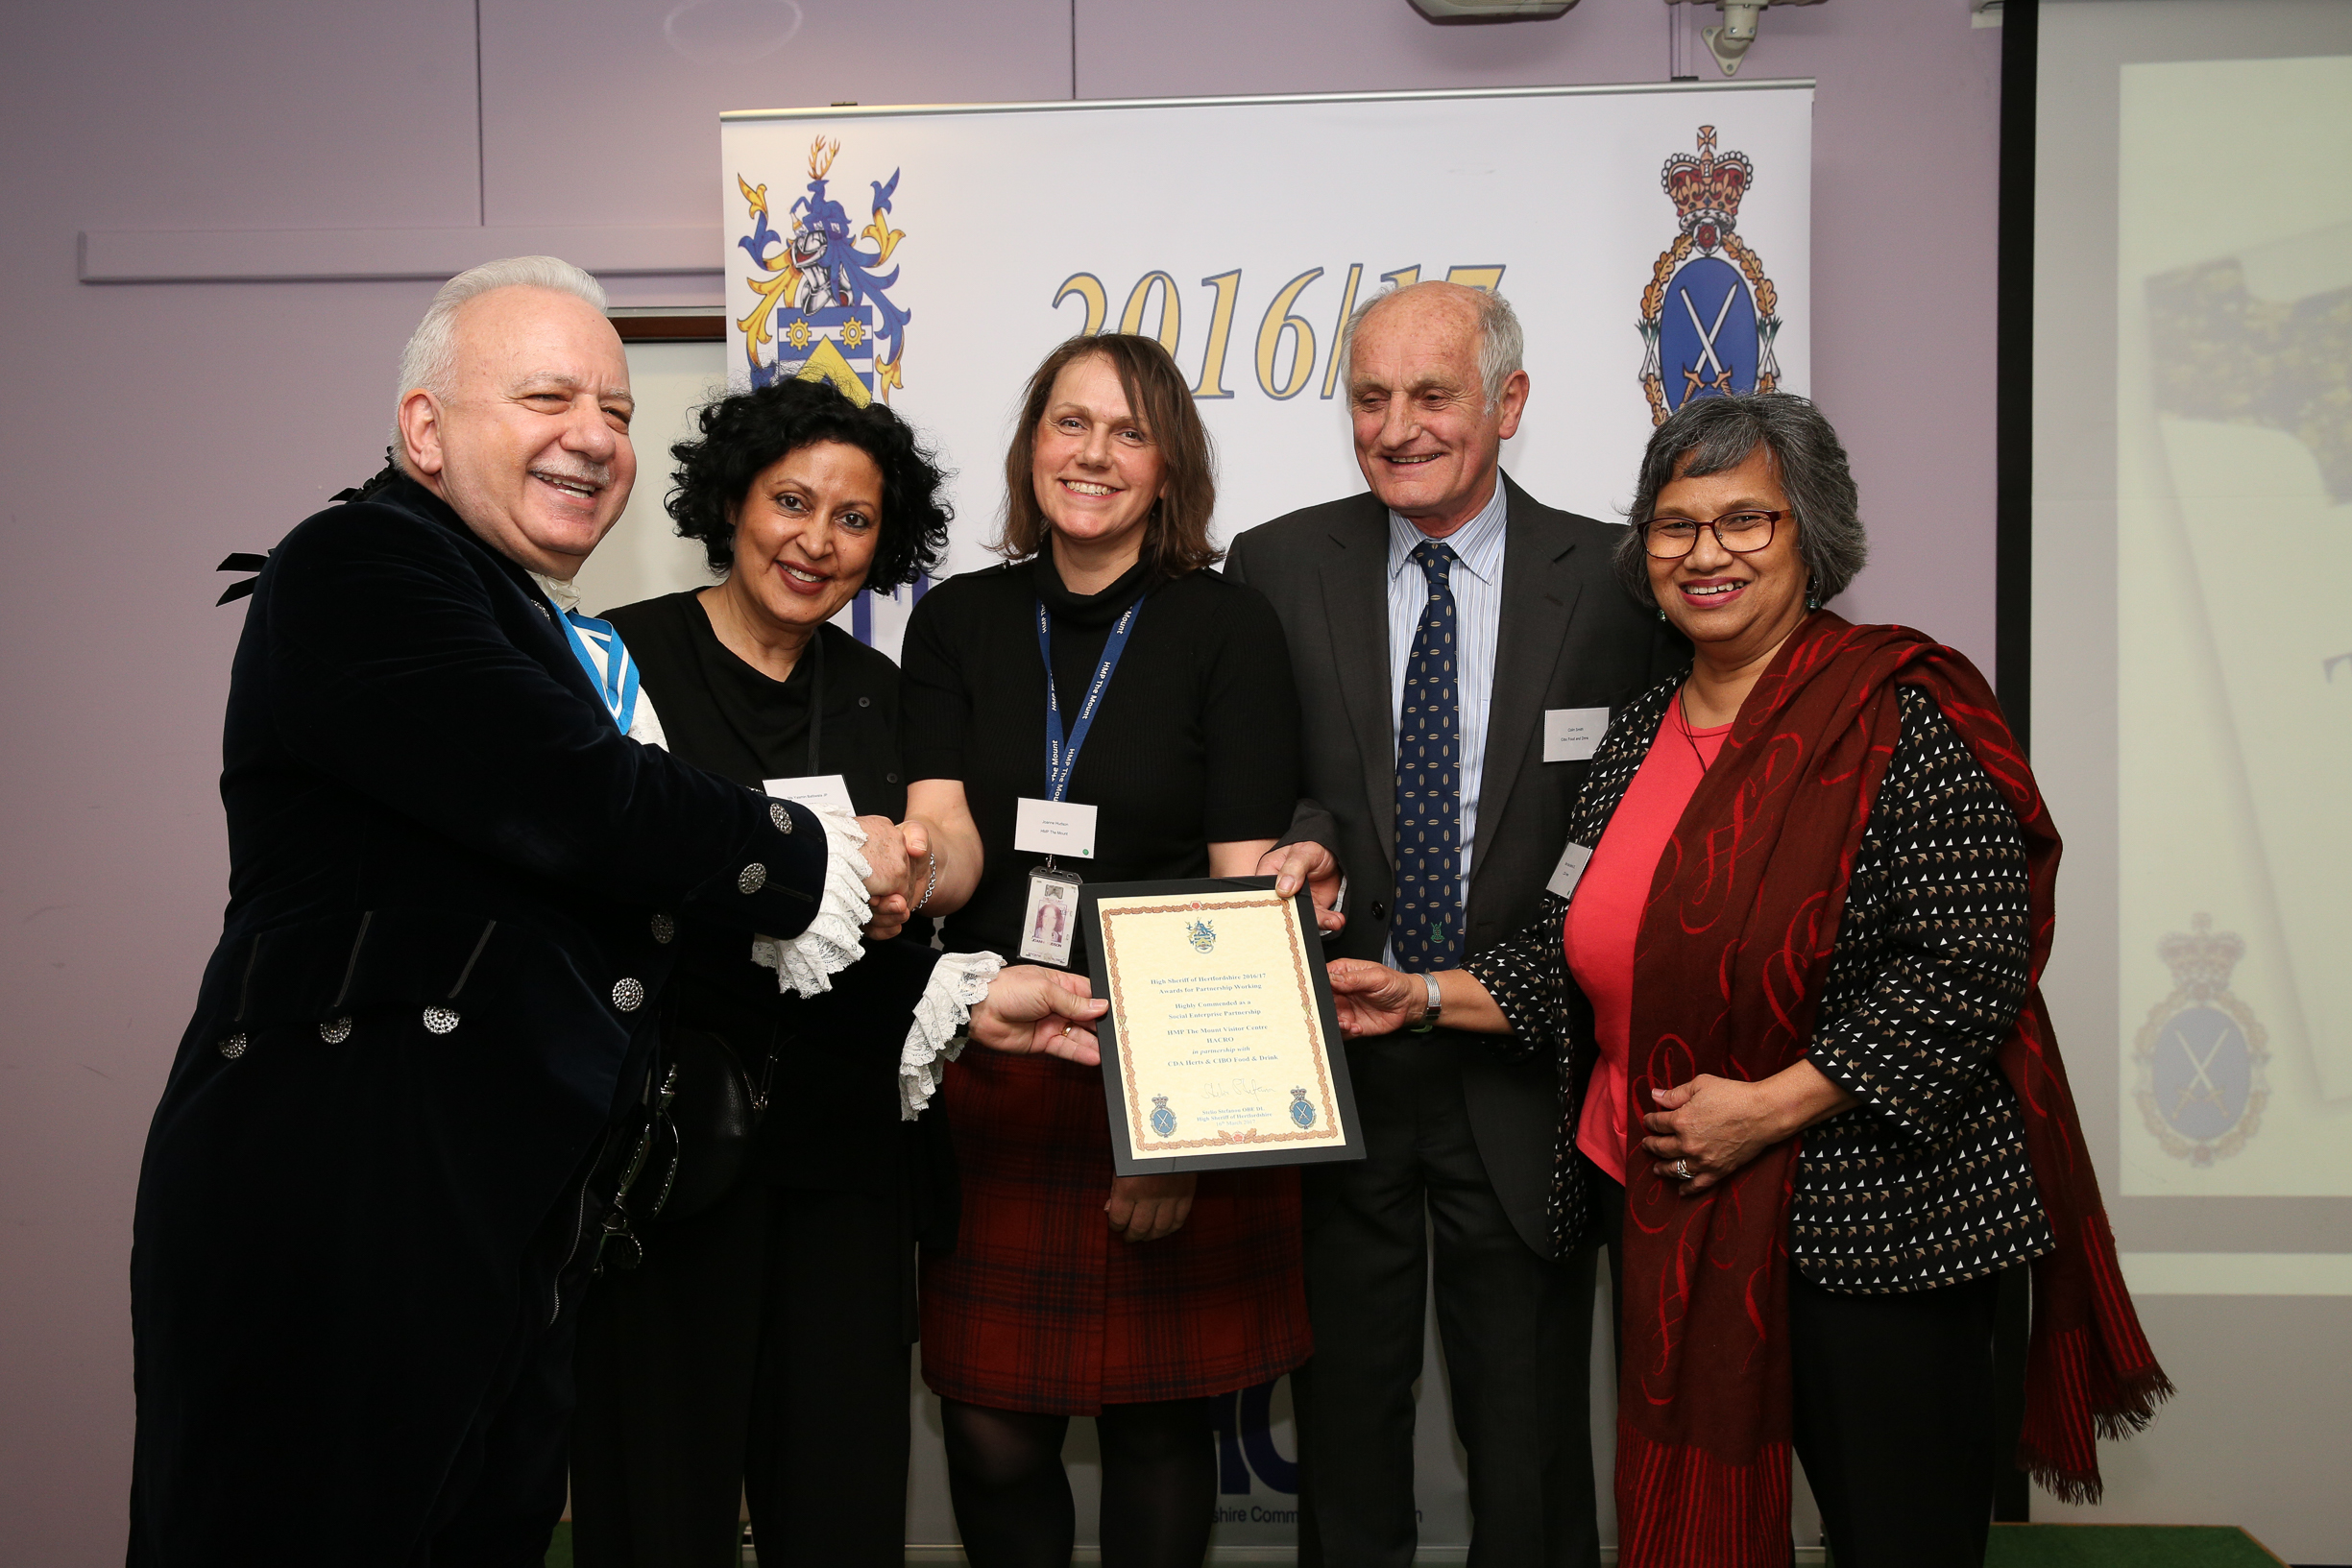 HACRO Recognised Twice in High Sheriff Awards 2017